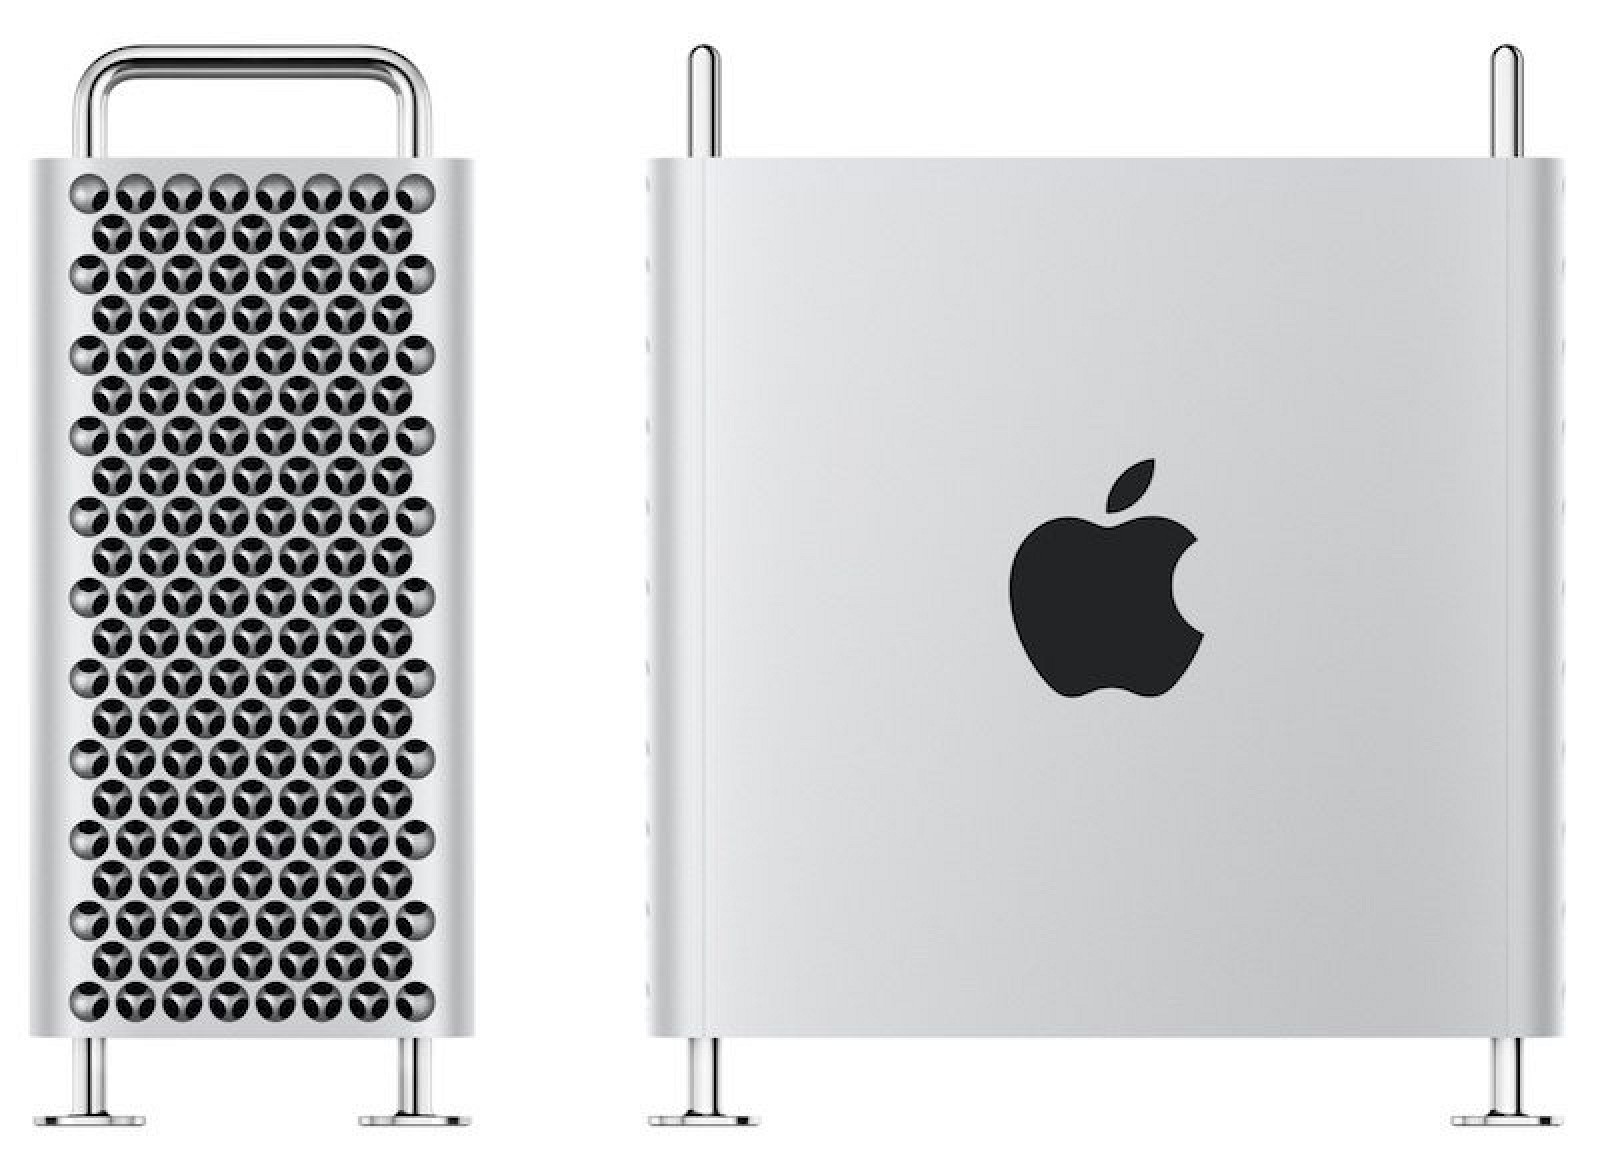 2019-mac-pro-side-and-front-800x581.jpg